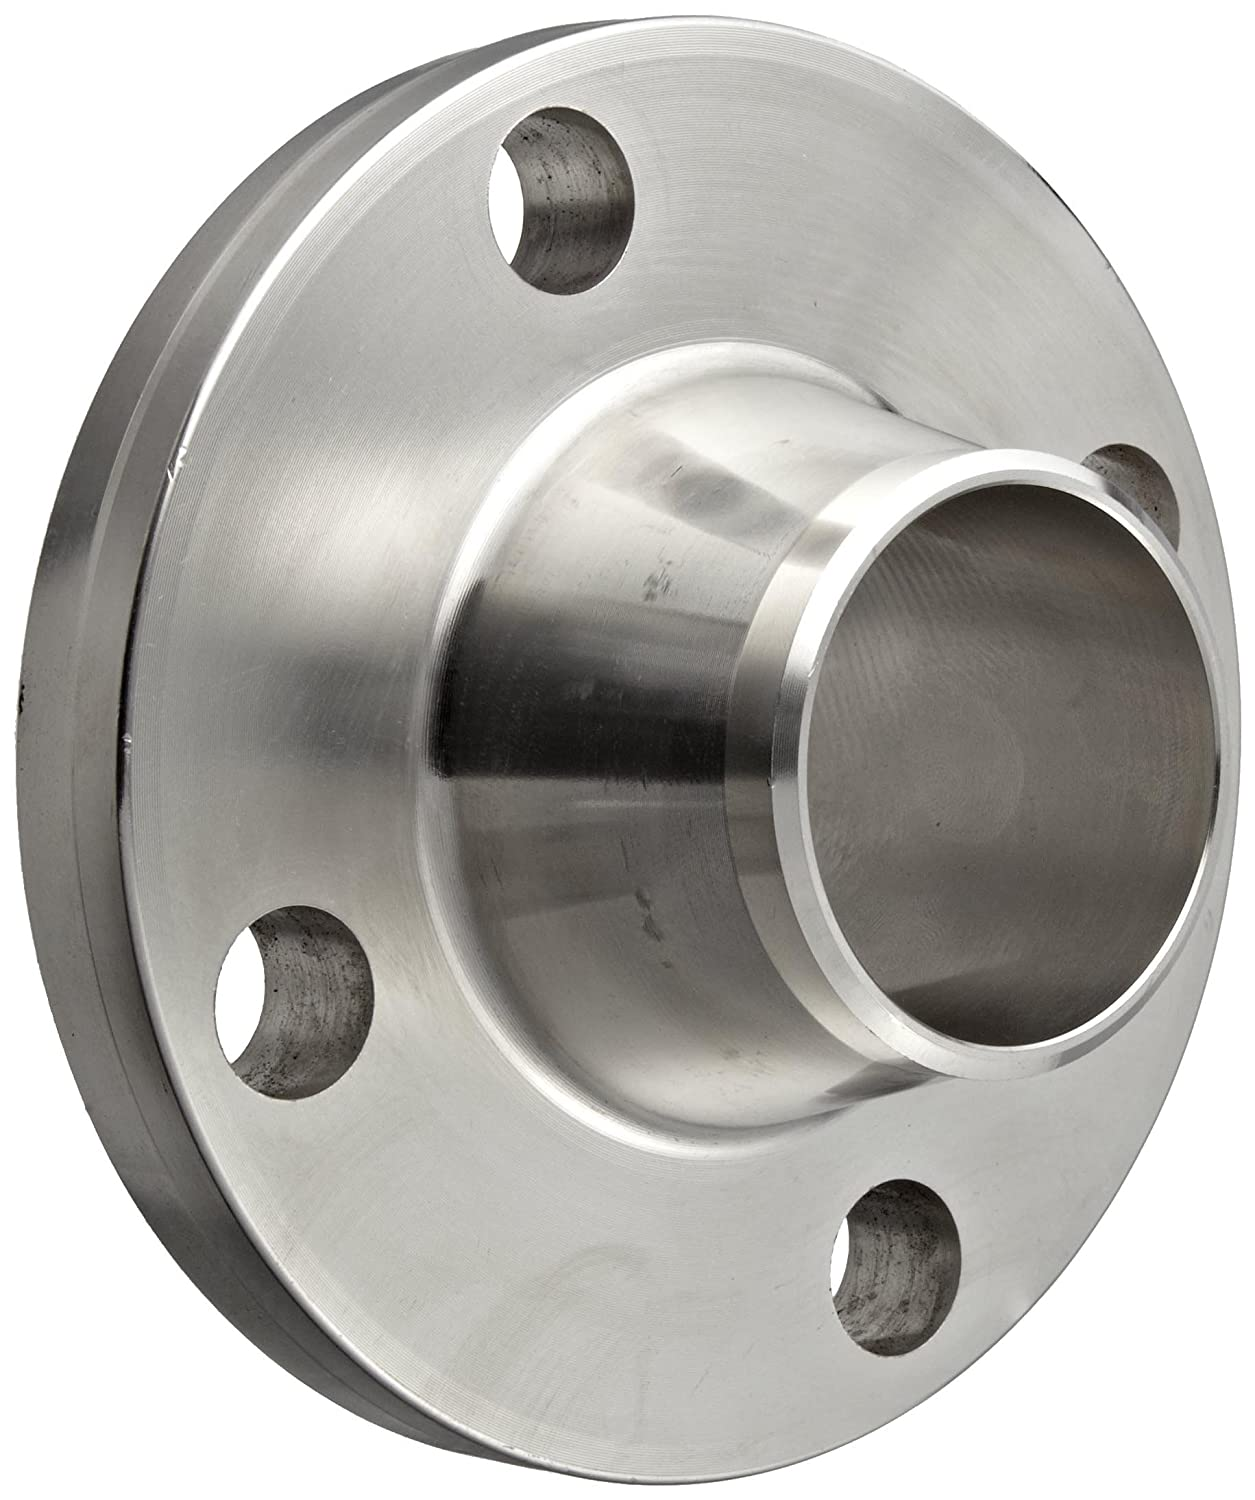 Stainless steel l weld neck pipe fitting flange